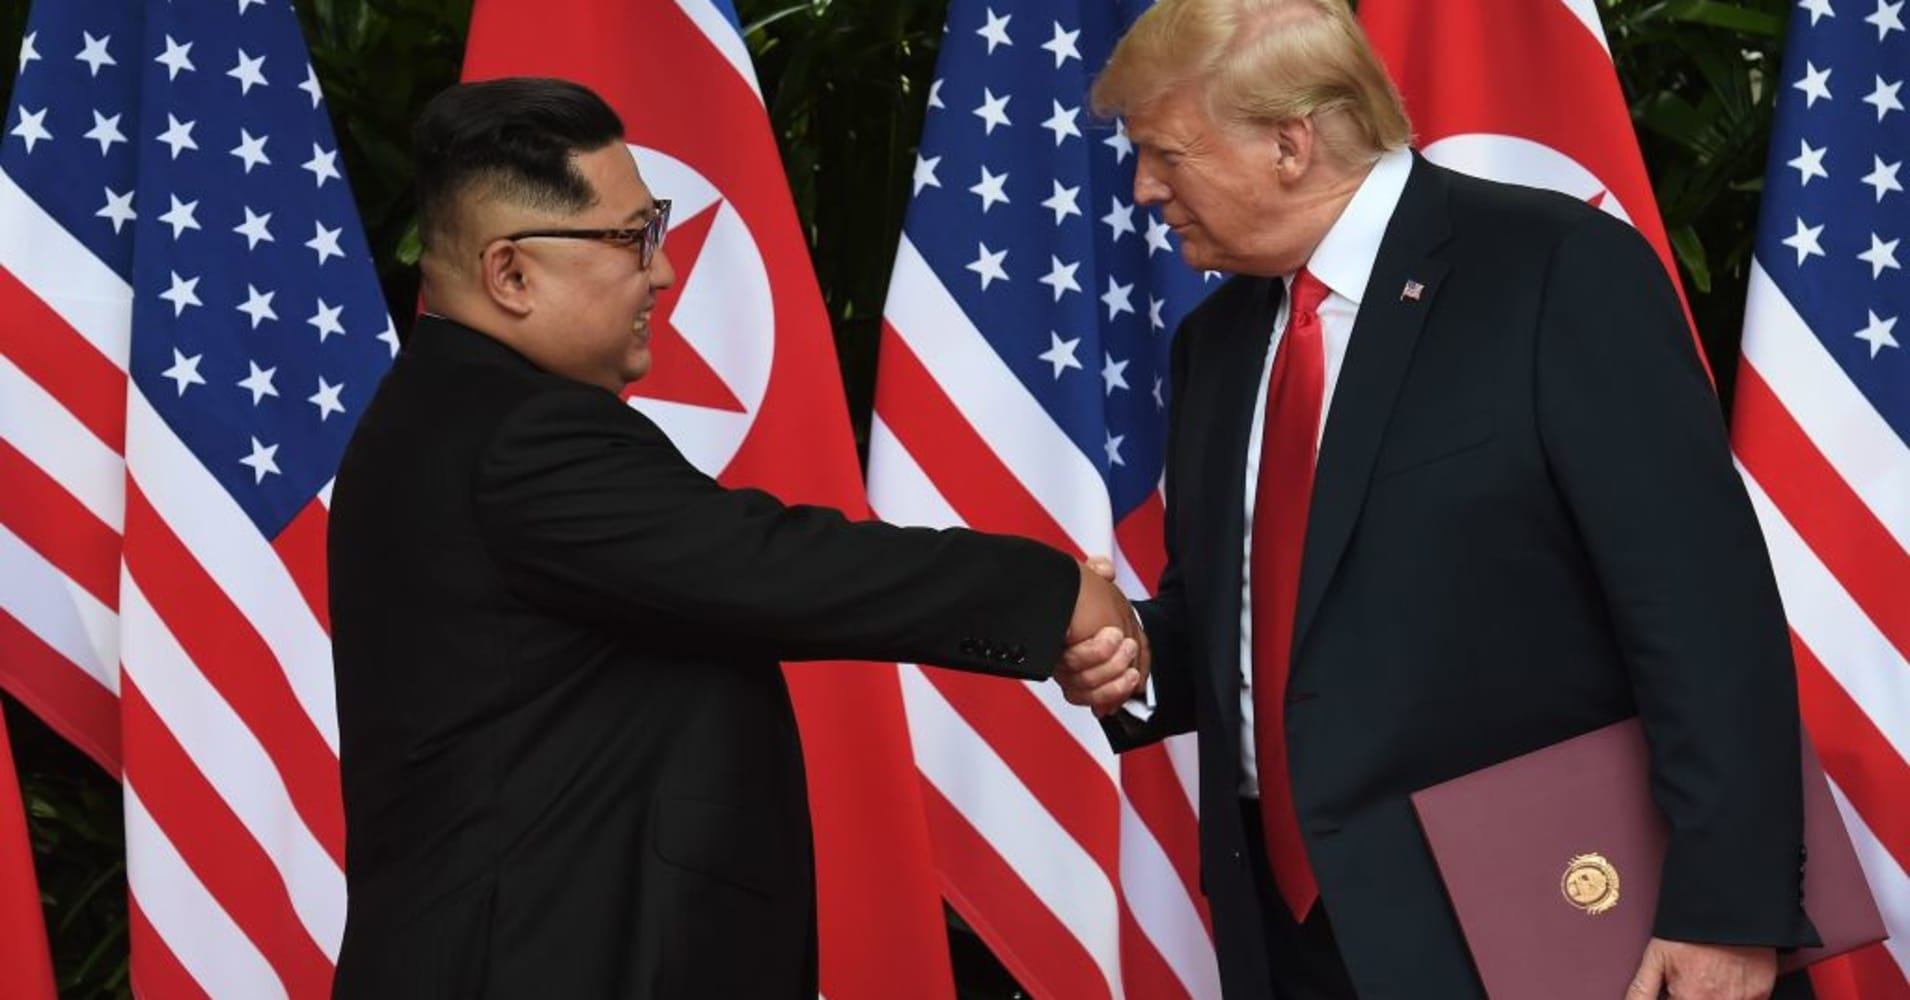 Trump: I'm in no hurry to see North Korea denuclearize